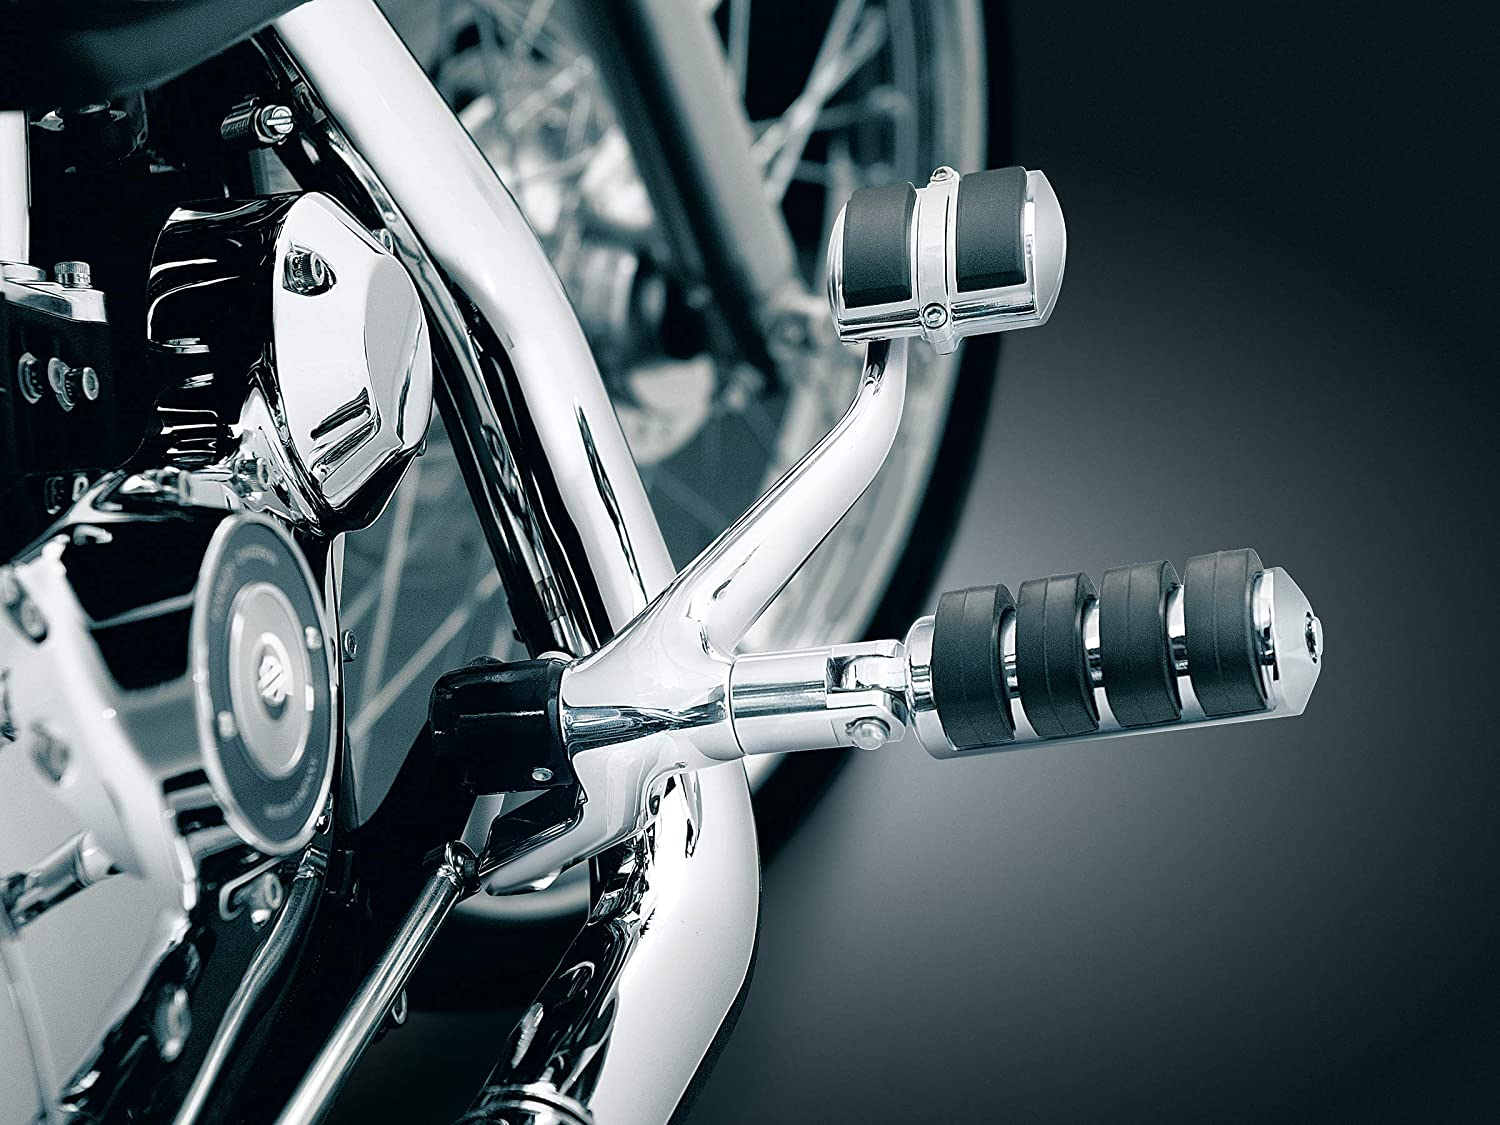 Small 1 Pair Kuryakyn 8000 Motorcycle Footpegs: Premium ISO Pegs with Male Mount Adapters Chrome